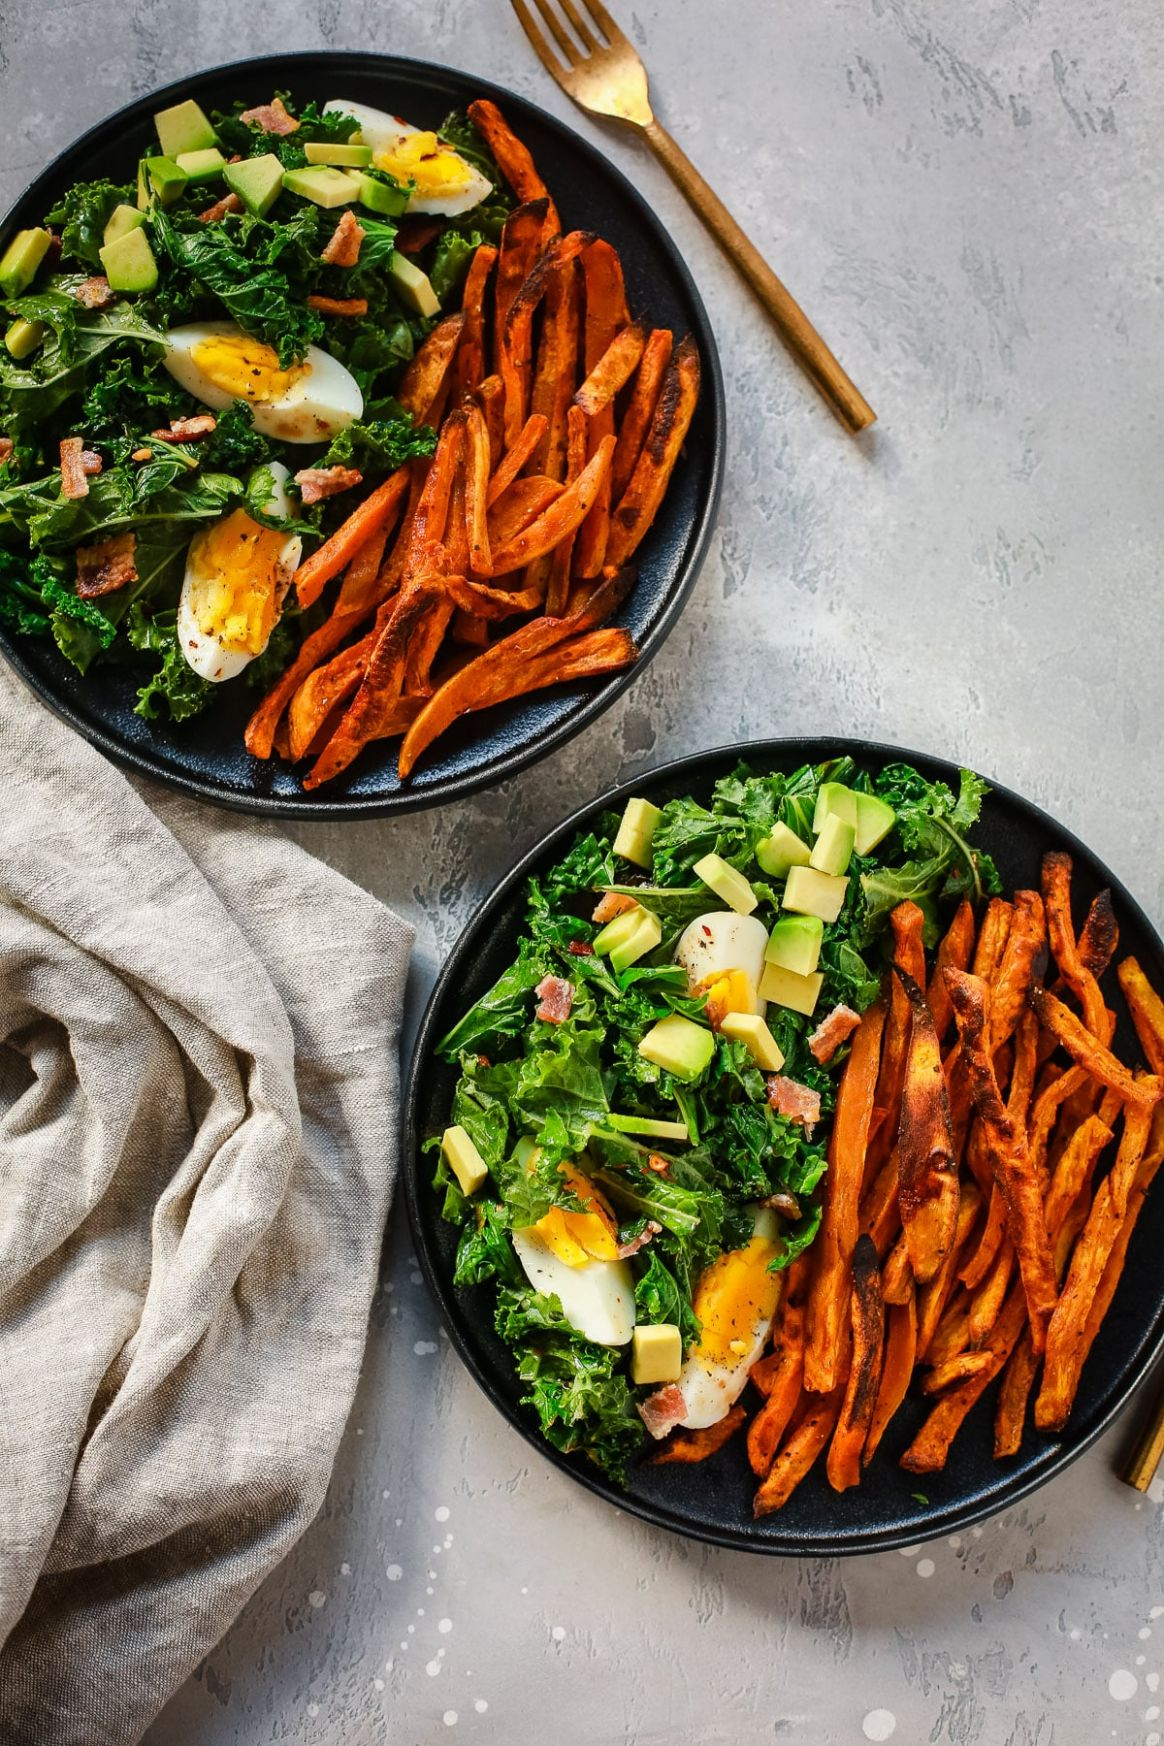 Kale Salad with Crispy Sweet Potato (Quick and Easy Whoel12 Lunch)